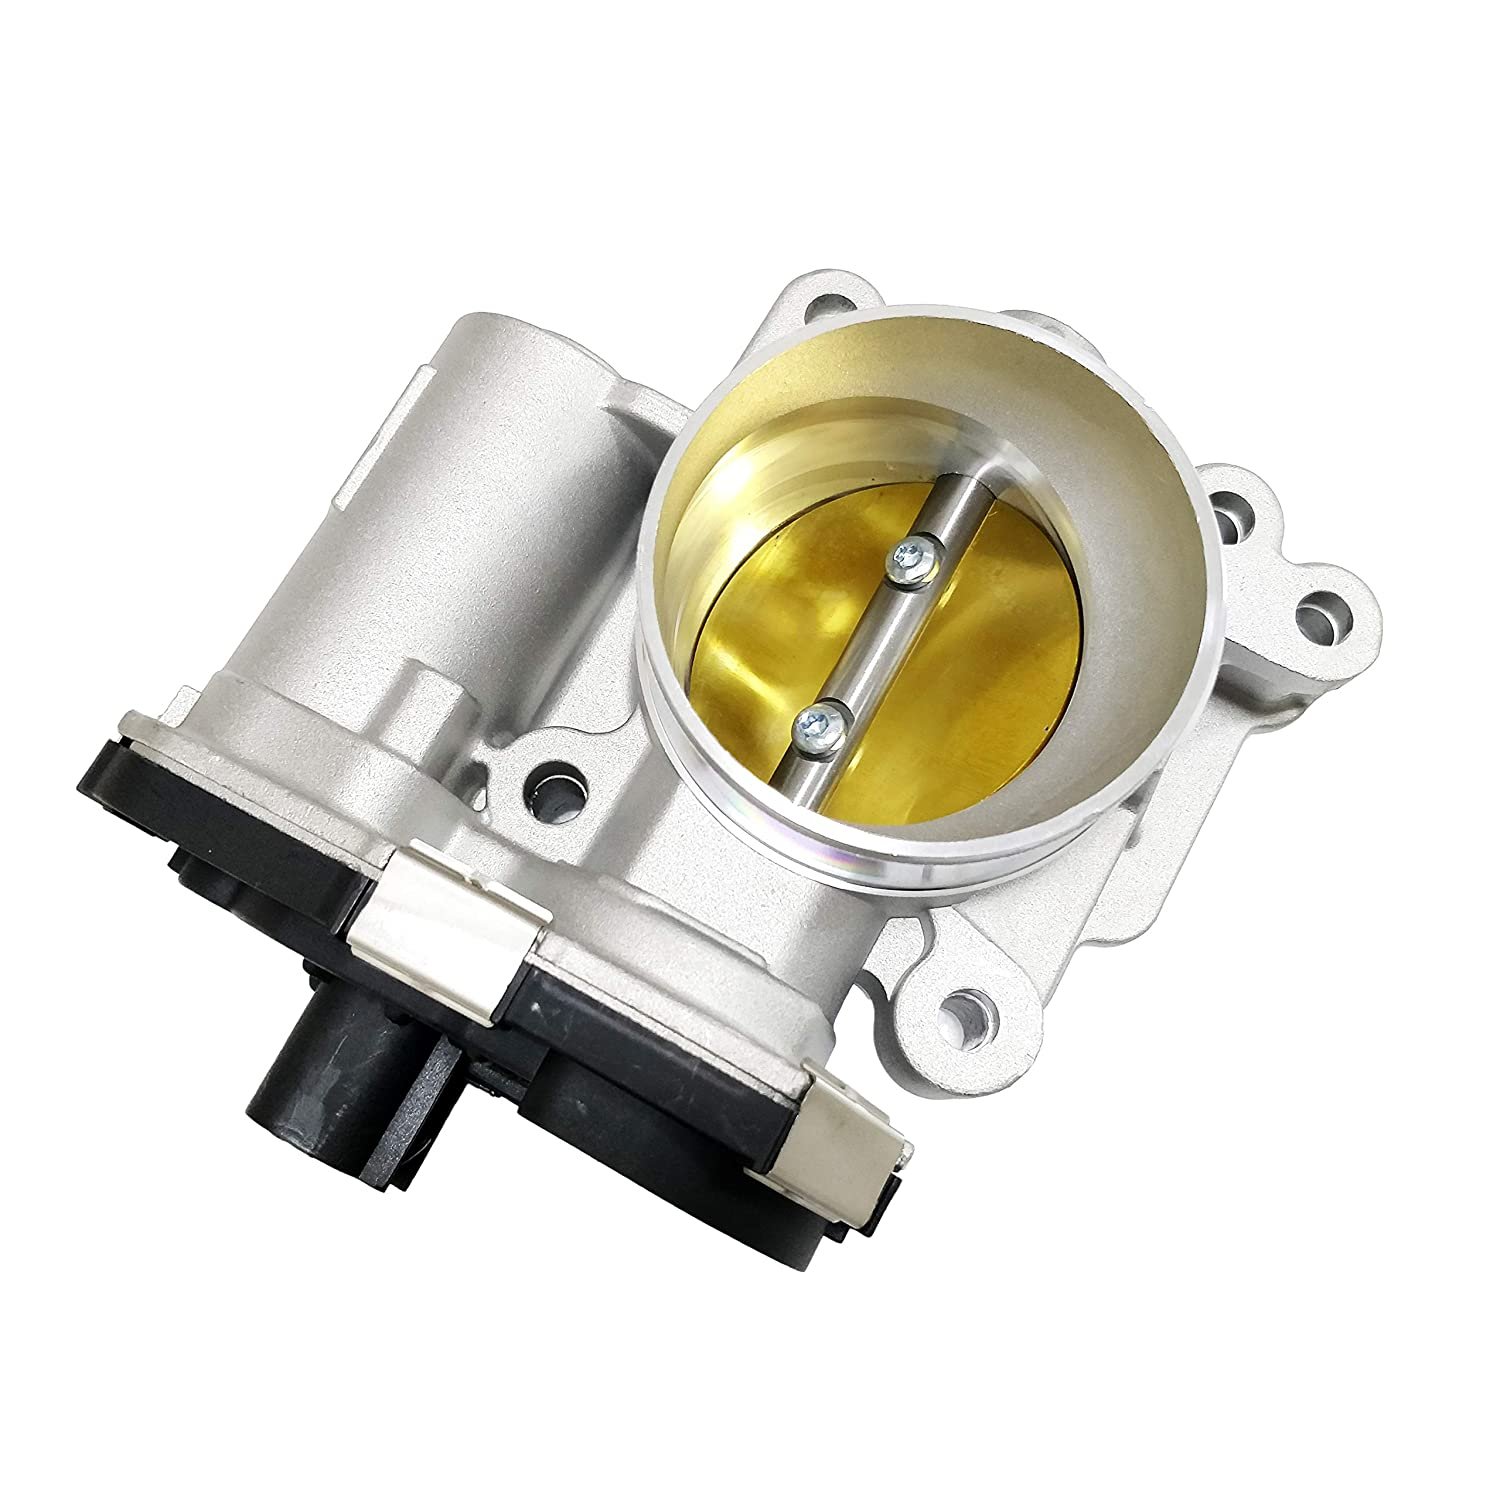 Fuel Injection Throttle Body for 2007-2010 Chevy Cobalt HHR Malibu Pontiac G5 Saturn Ion Vue 2.2L